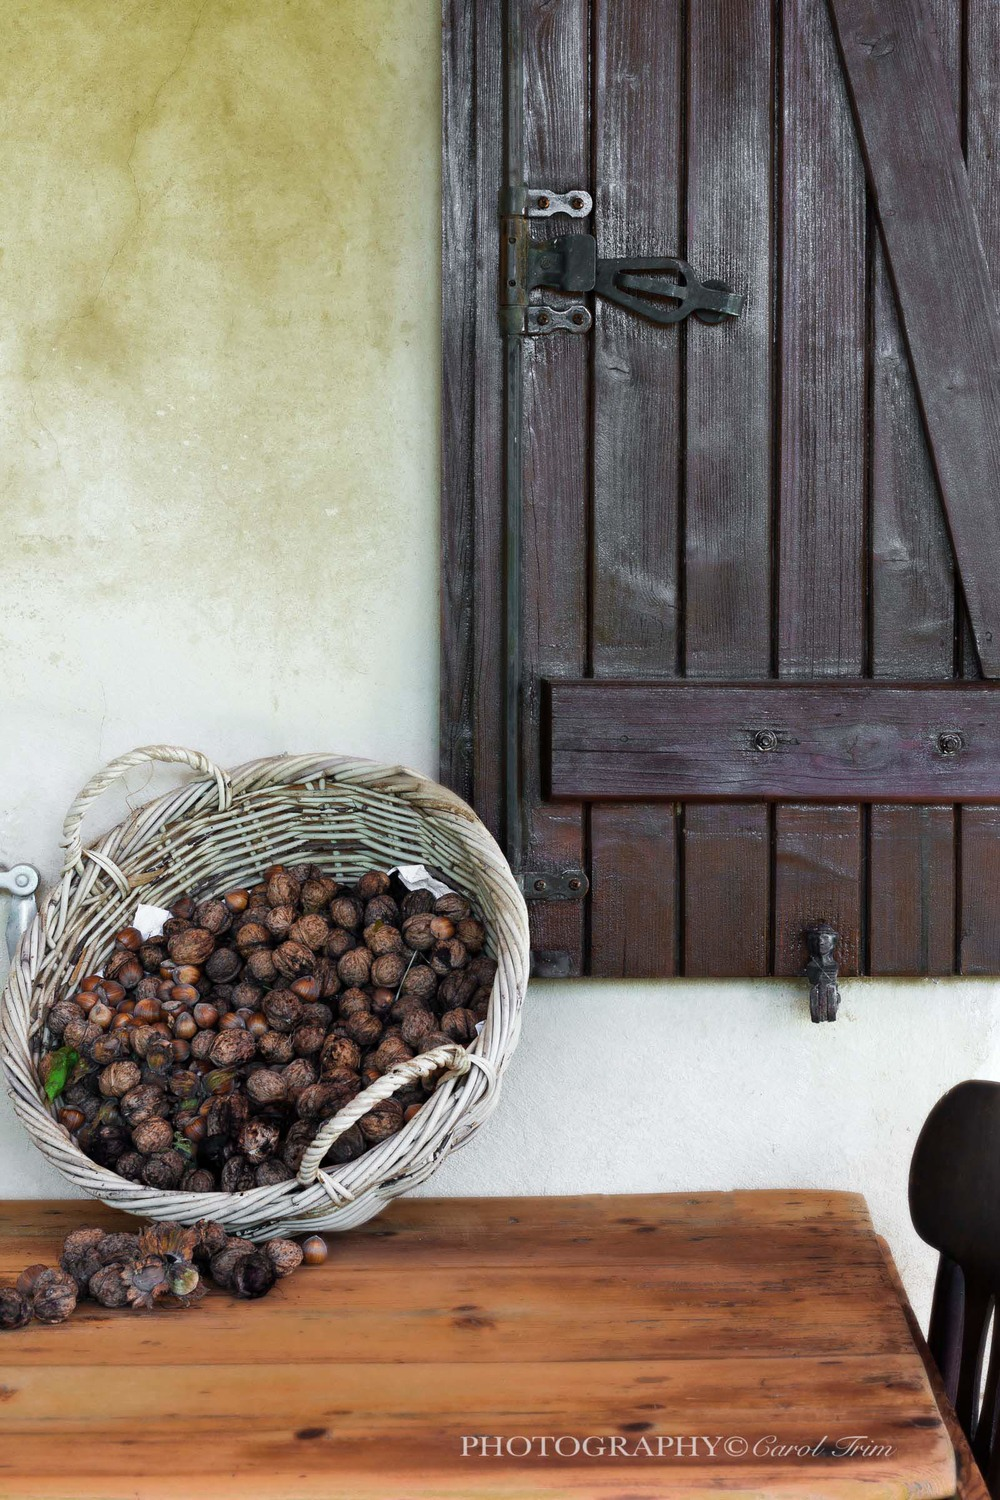 Shutters and walnuts